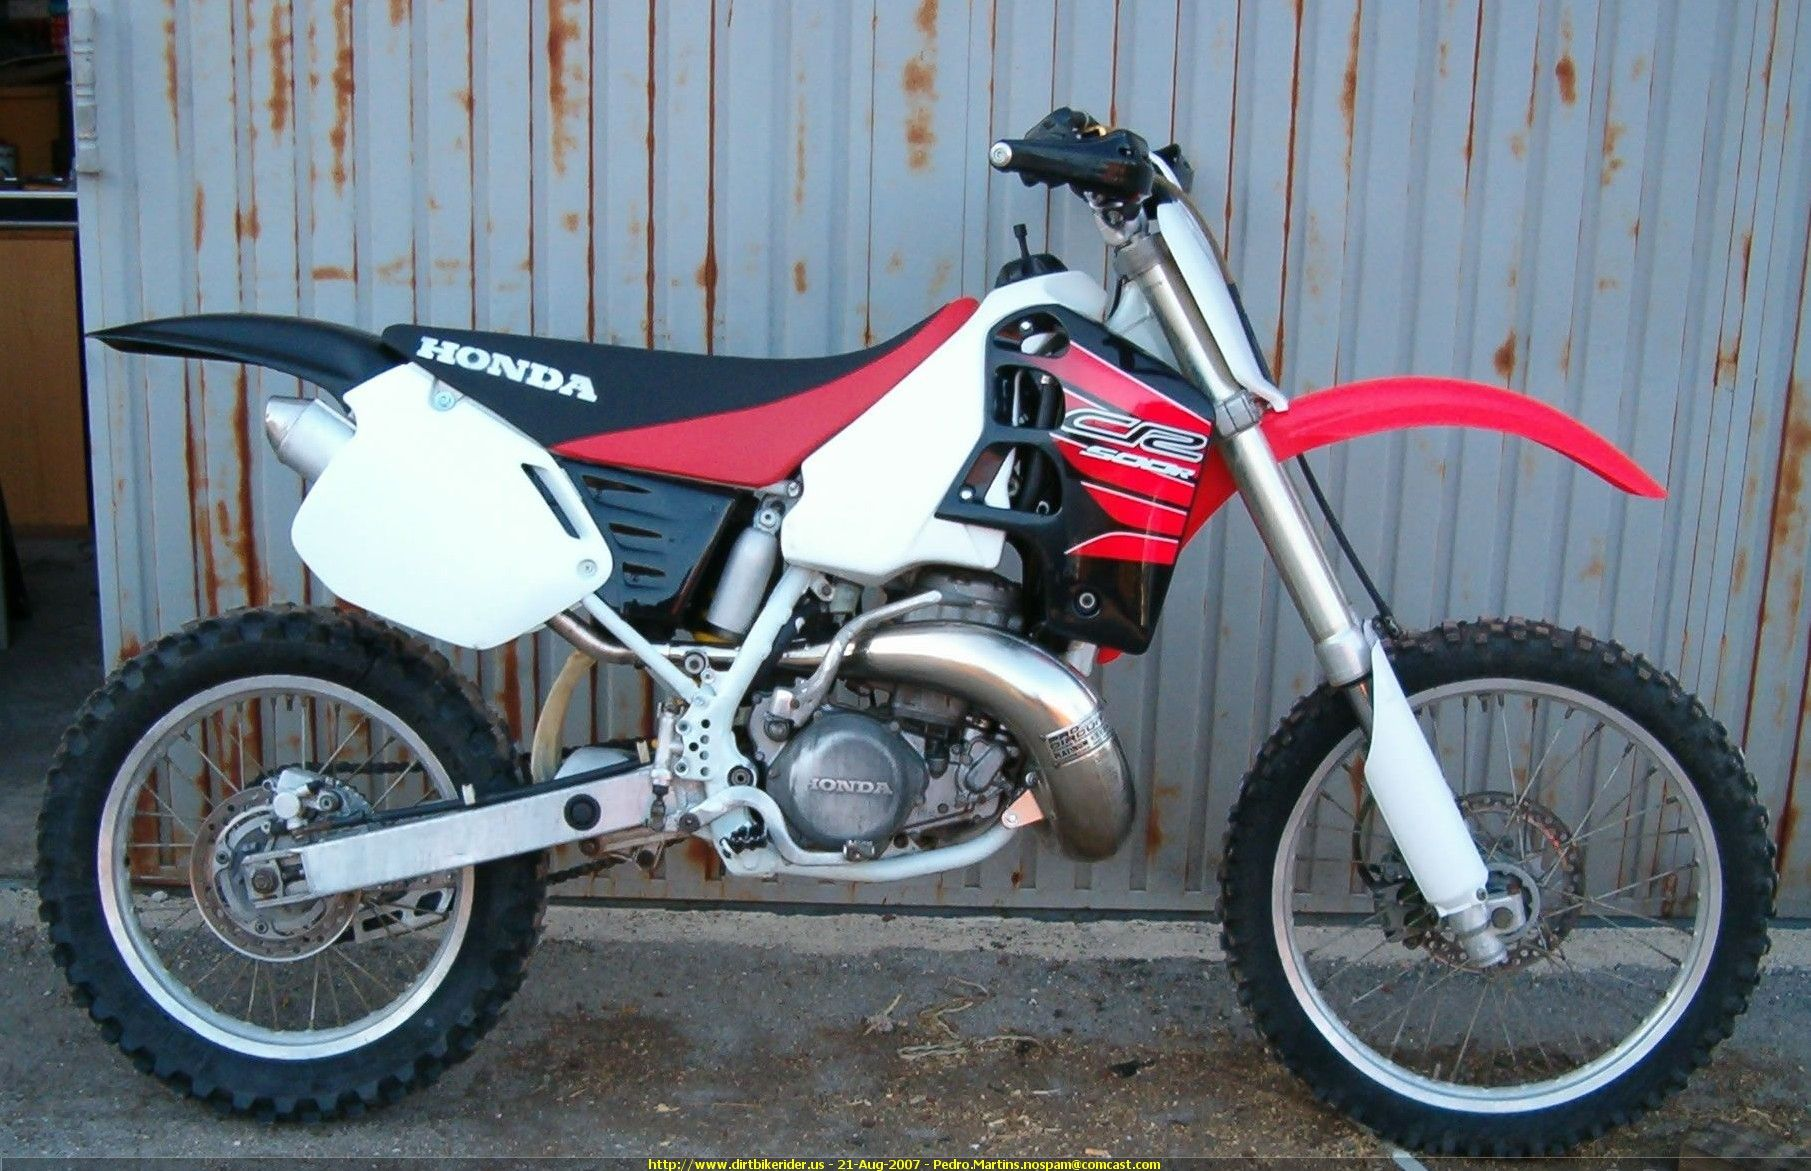 95 Cr500 This Bike Is A Beast Beauties 3 Pinterest Beast